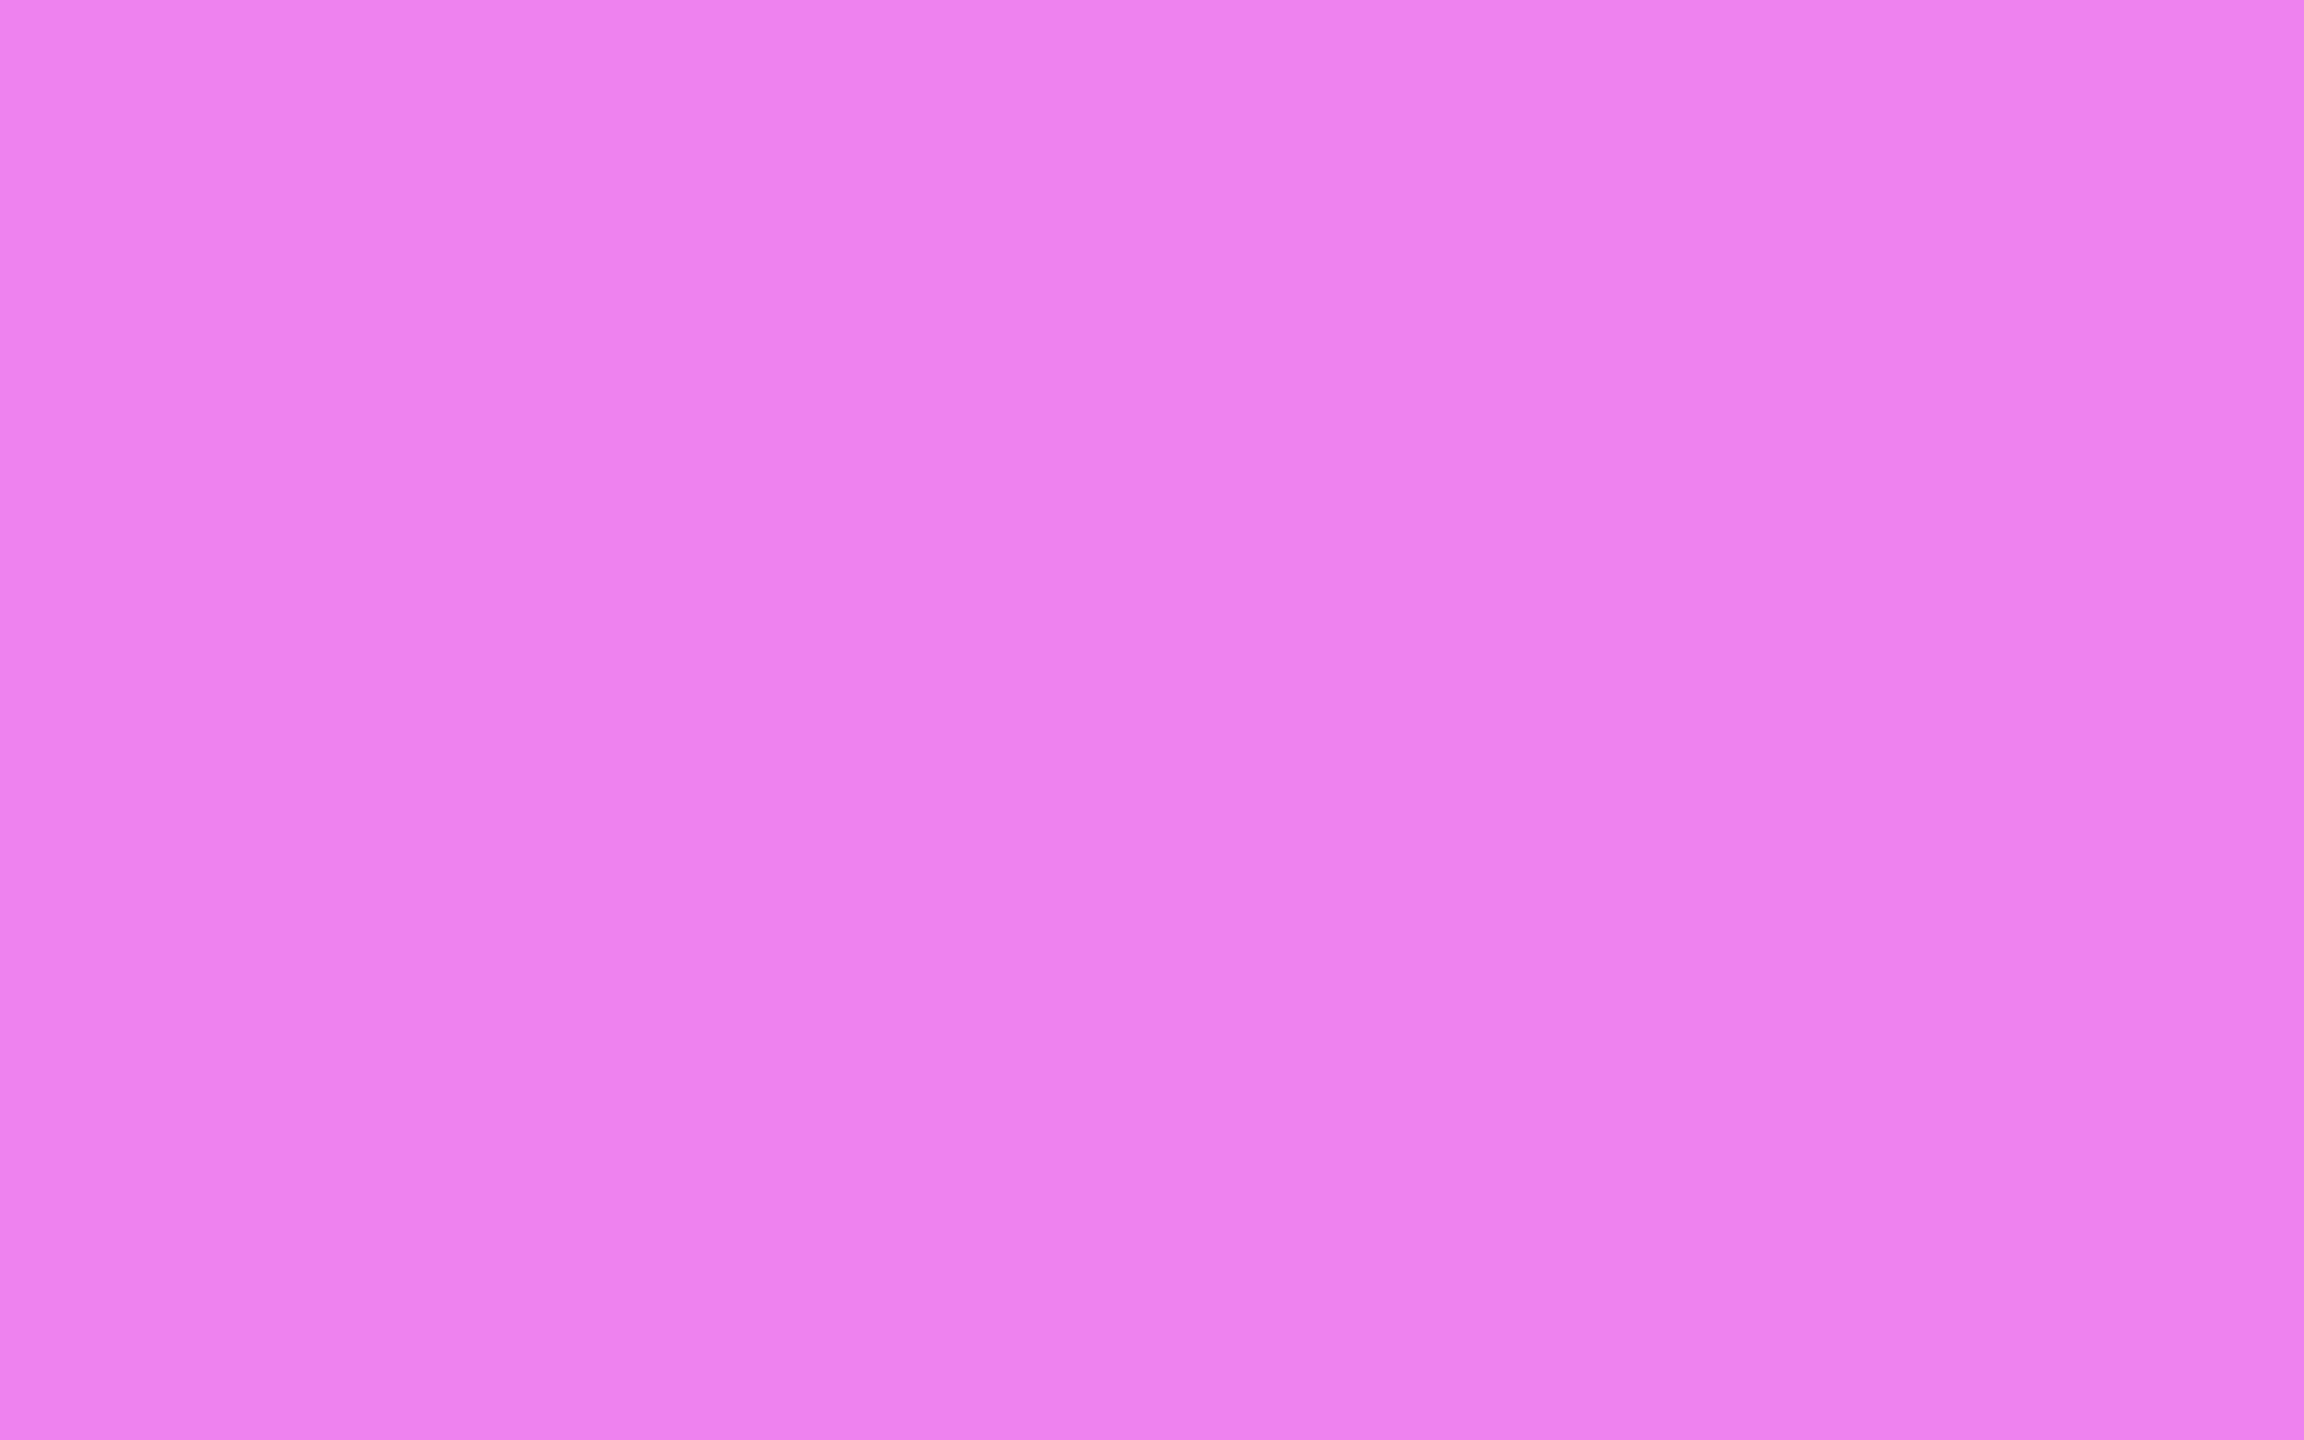 2304x1440 Lavender Magenta Solid Color Background